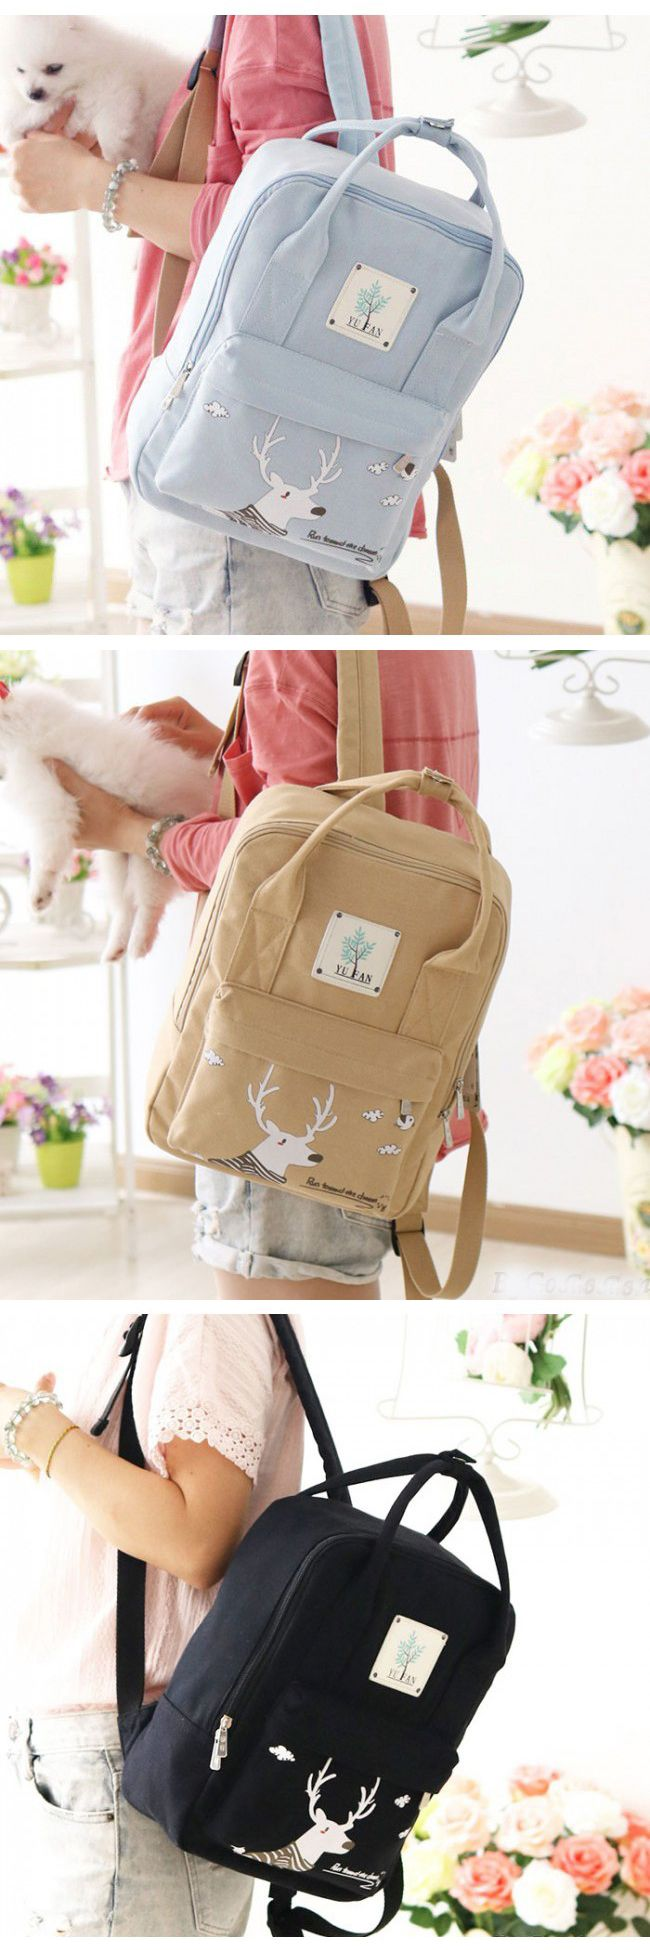 New Arrival Fashion Cartoon Deer Printed Rucksack College Canvas Backpack for Girls school bags for teens backpacks,school bags for teens backpacks student,school bags for teens backpacks black,school bags highschool,school bags handbags,school bags large,school bags laptop,school bags college,school bags backpacks,school bags backpacks student,school bags backpacks fashion,school bags backpacks college,school bags black